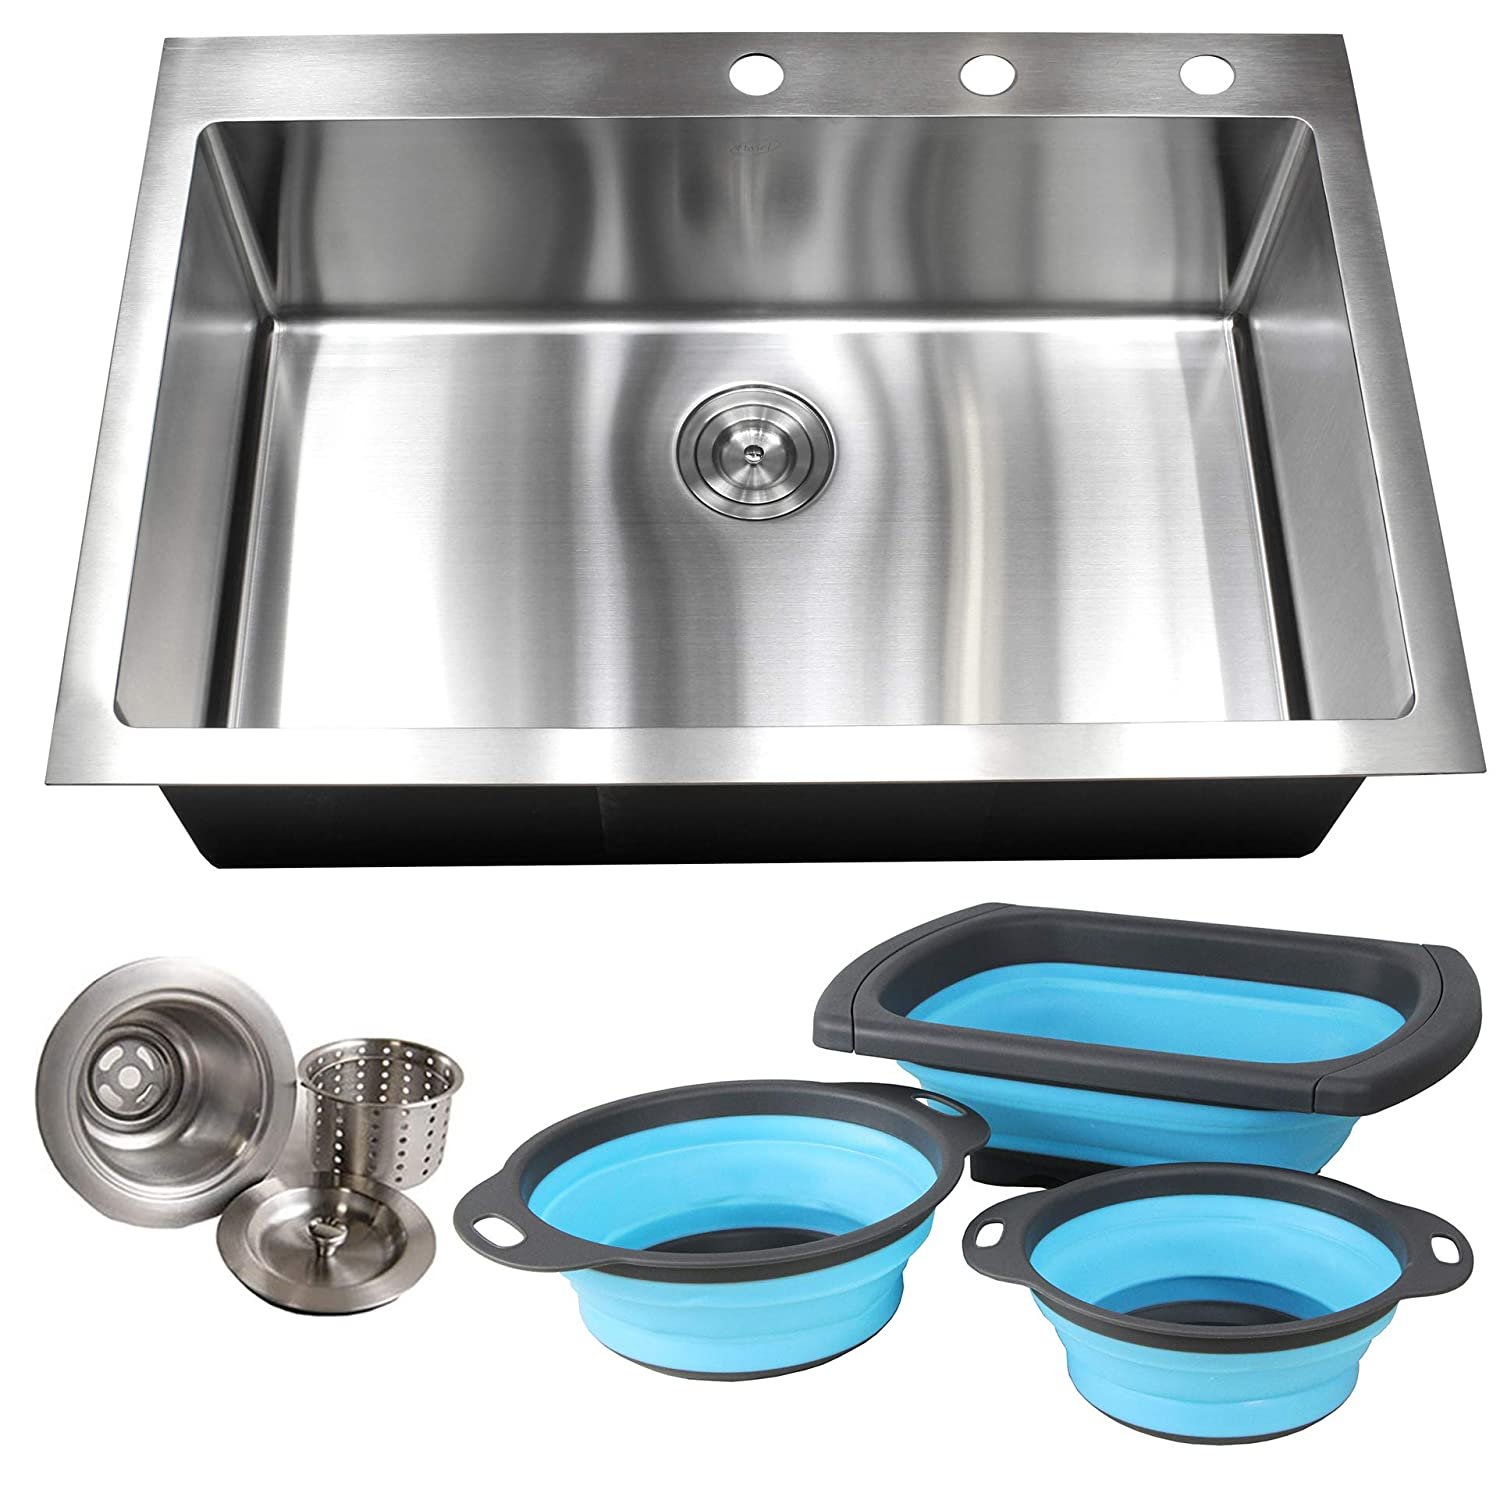 33 Inch Drop In Topmount Stainless Steel Kitchen Sink Package – 16 Gauge Single Bowl Basin w 9 Gauge Deck and 16 Gauge Bowl, 33 x 22 x 10 , with Set of 3 Collapsible BPA-Free Silicone Colander